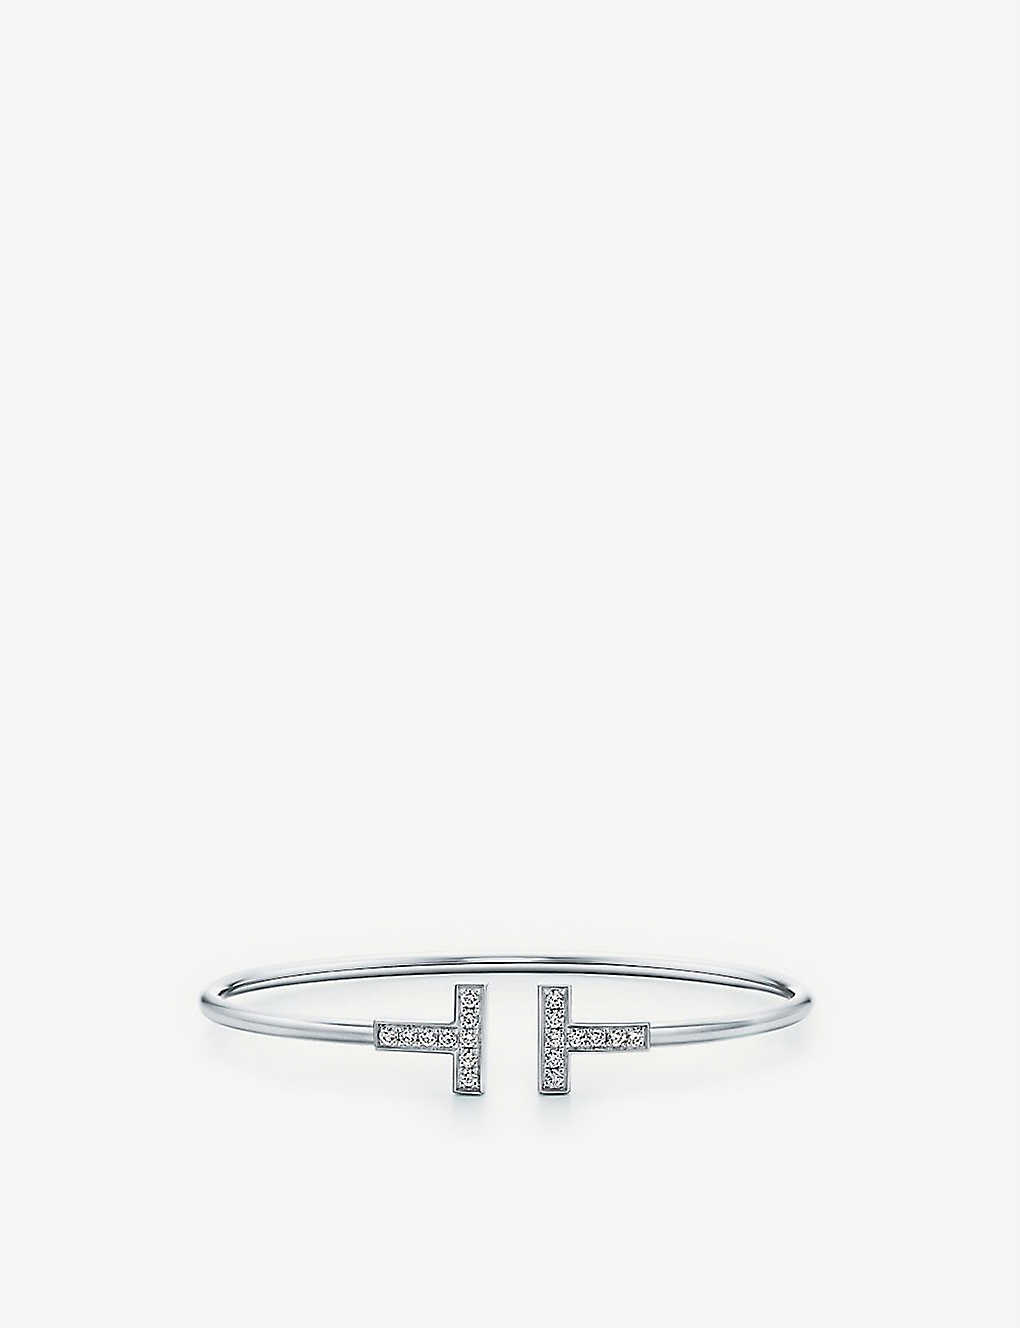 76077cd38 TIFFANY & CO Tiffany T wire bracelet in 18k white gold with diamonds